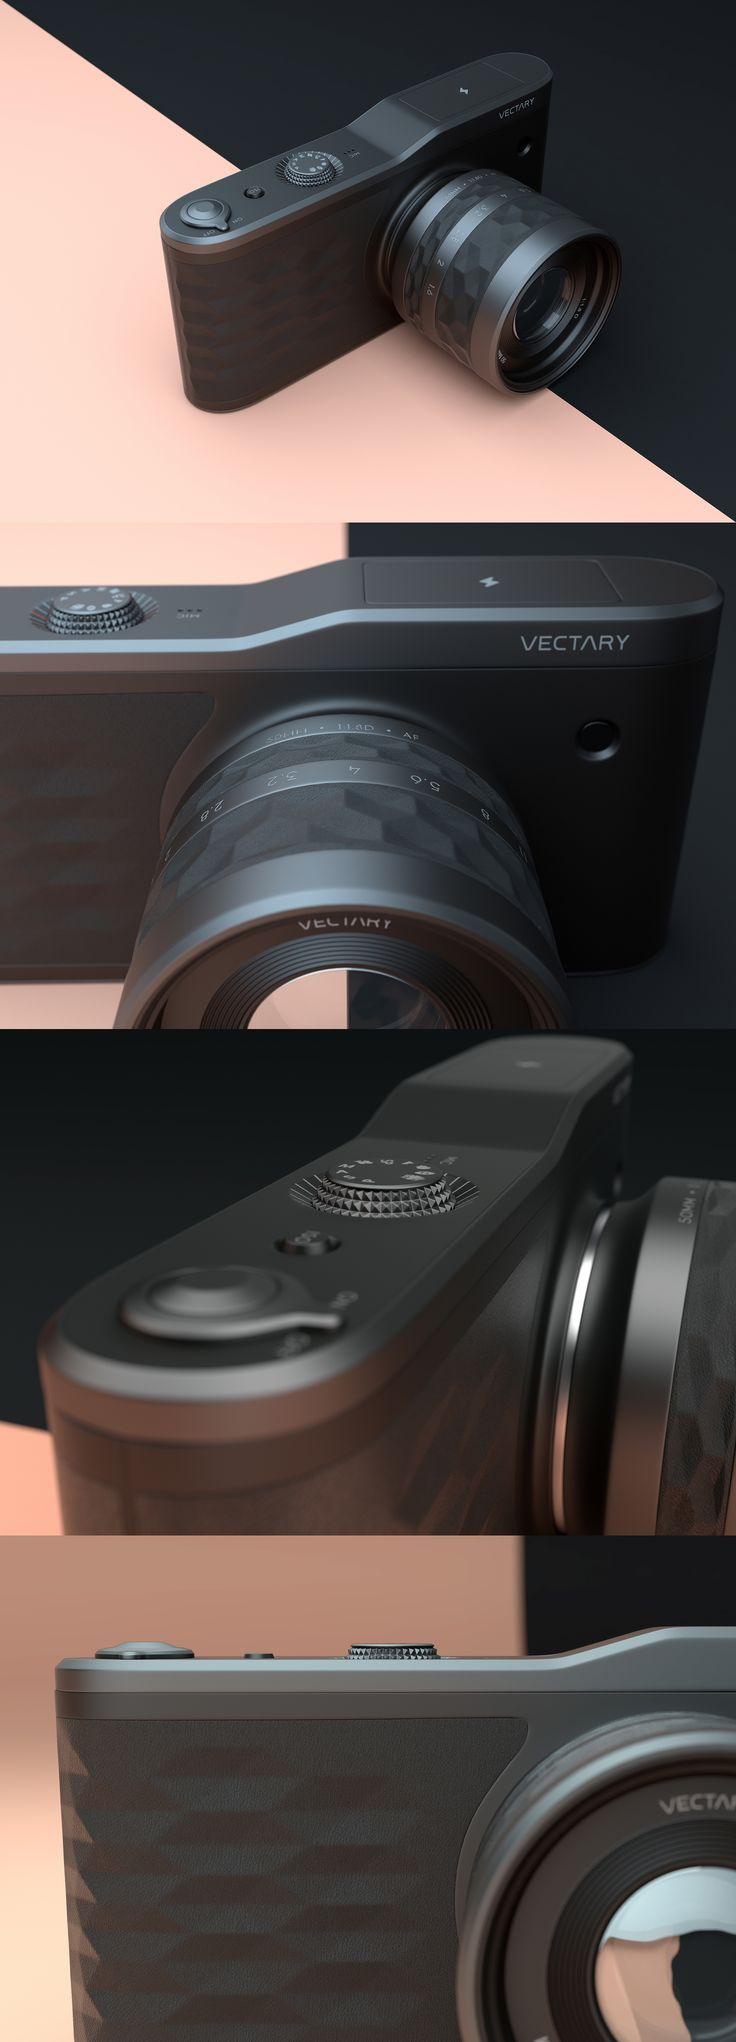 Camera product design created with VECTARY, the free, online 3D modeling tool. Featured on leManoosh.